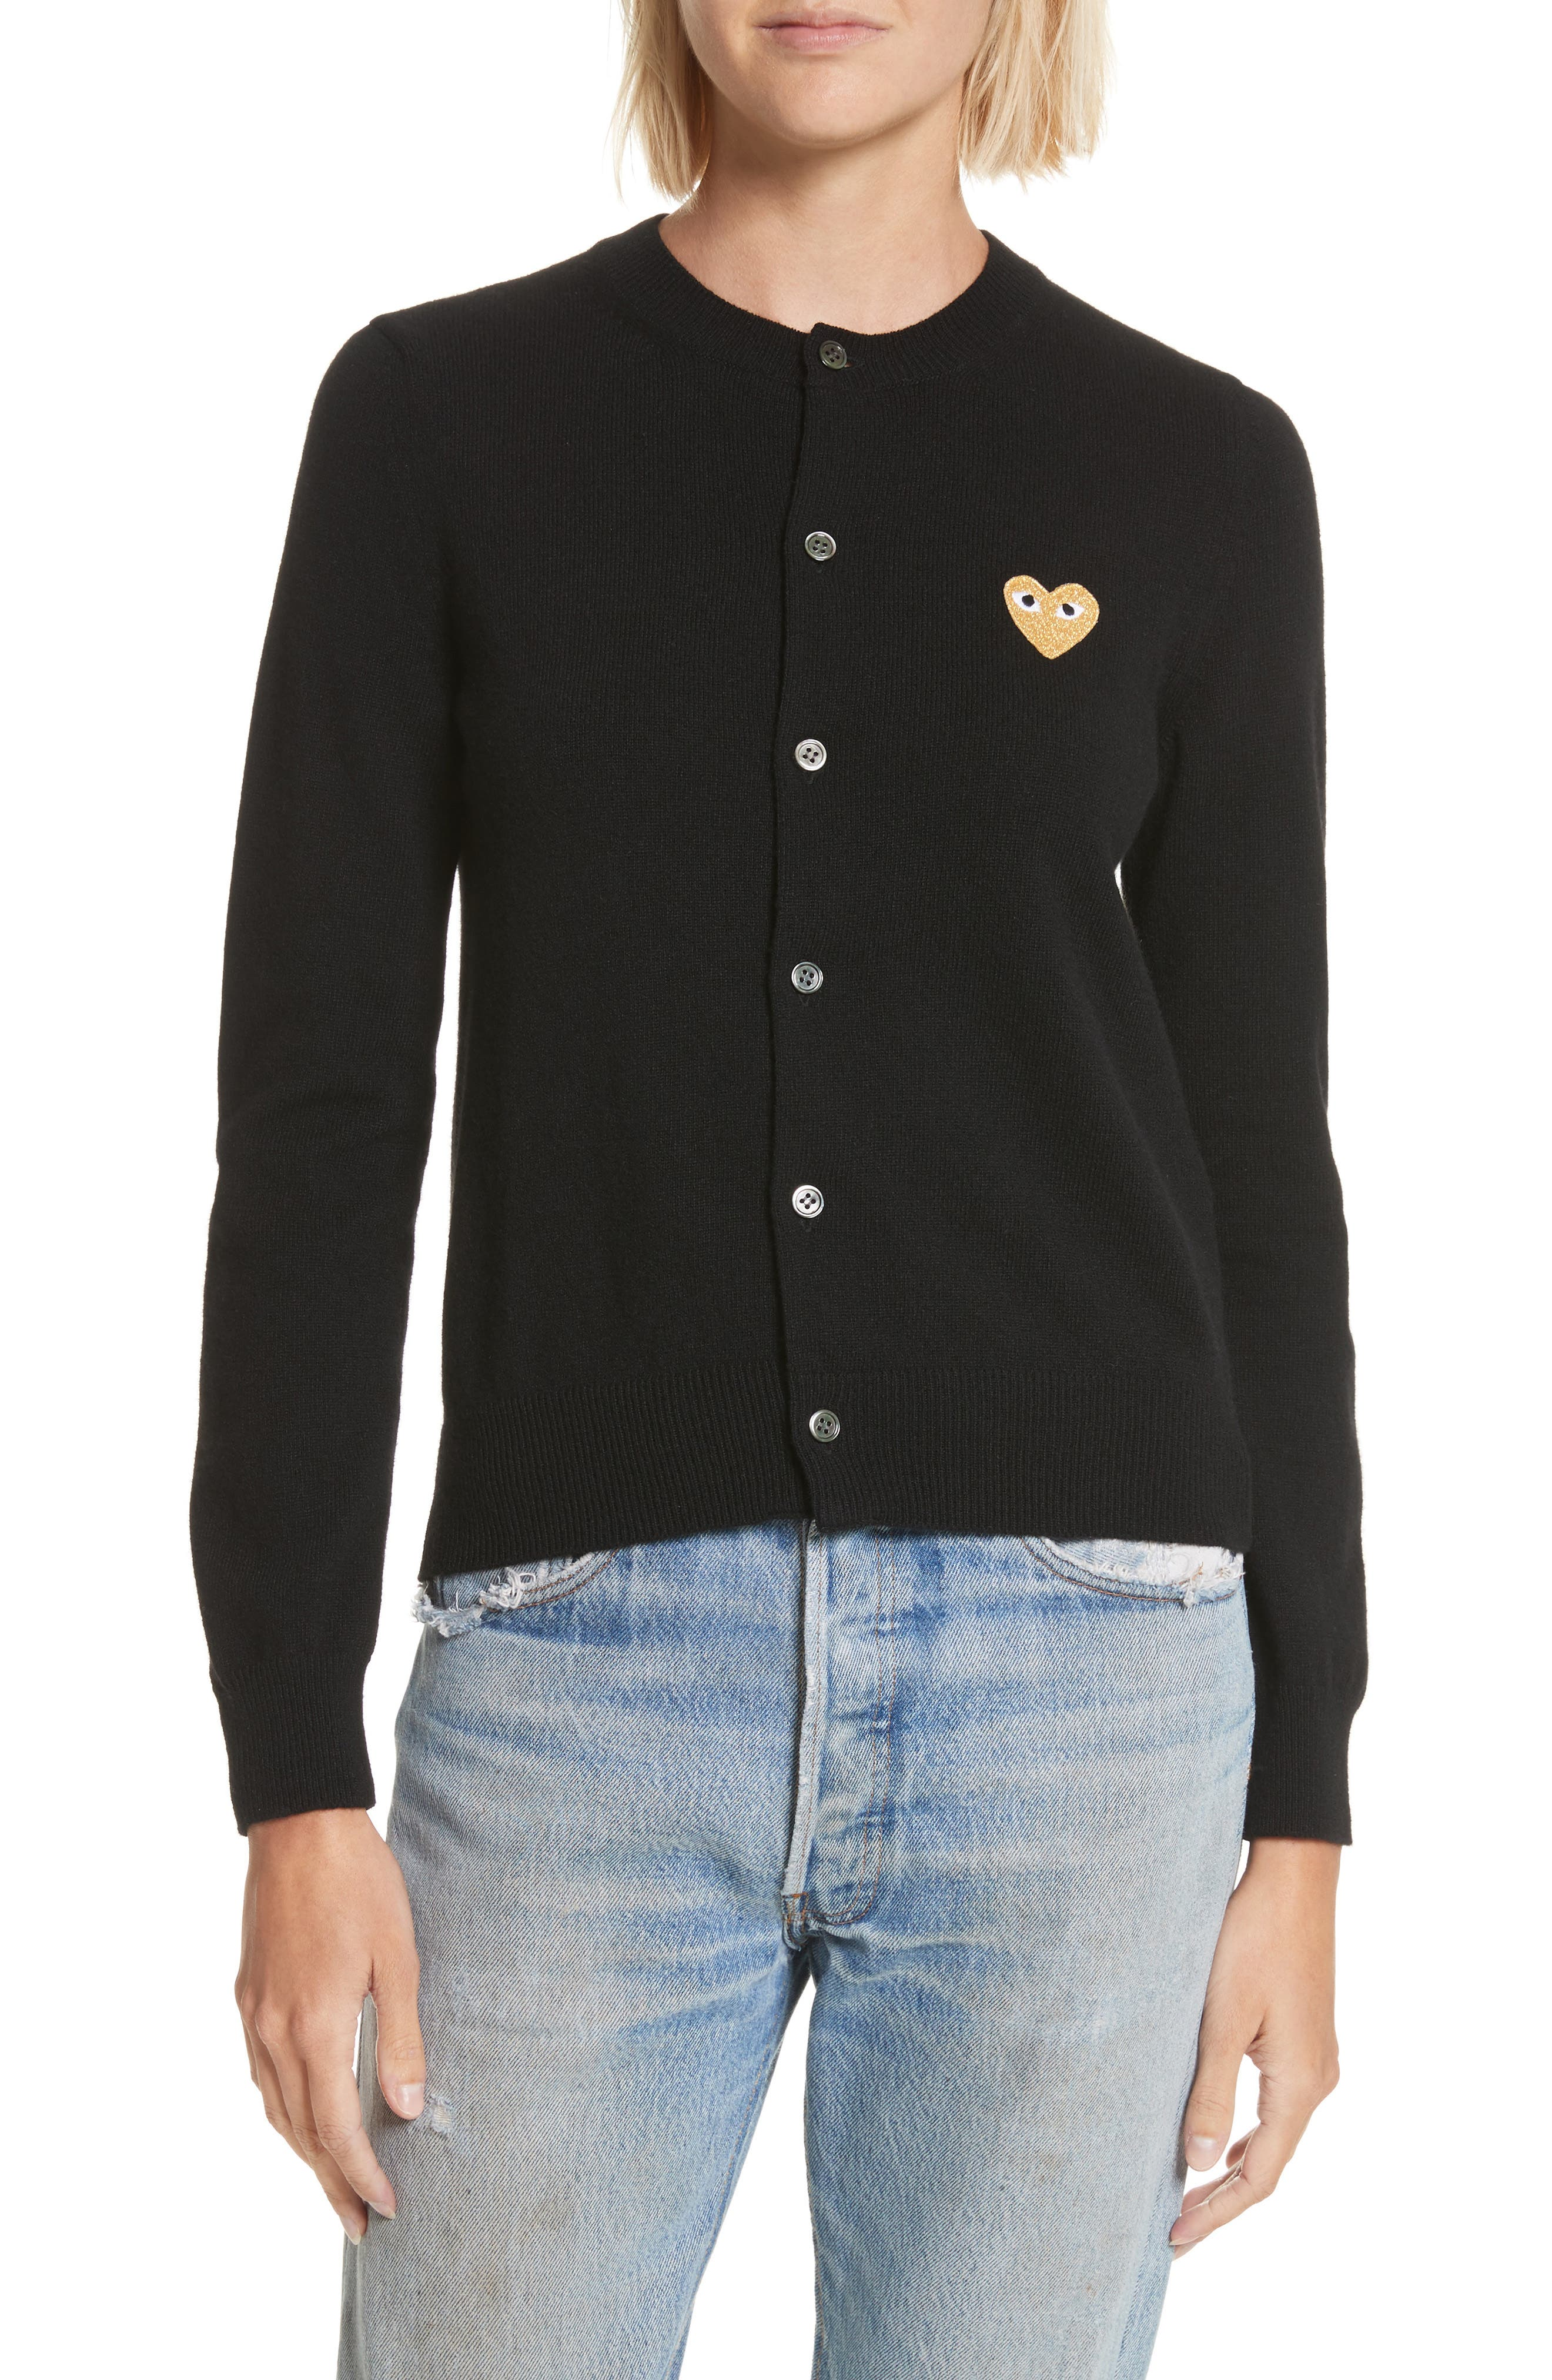 PLAY Gold Heart Patch Wool Cardigan,                             Main thumbnail 1, color,                             Black